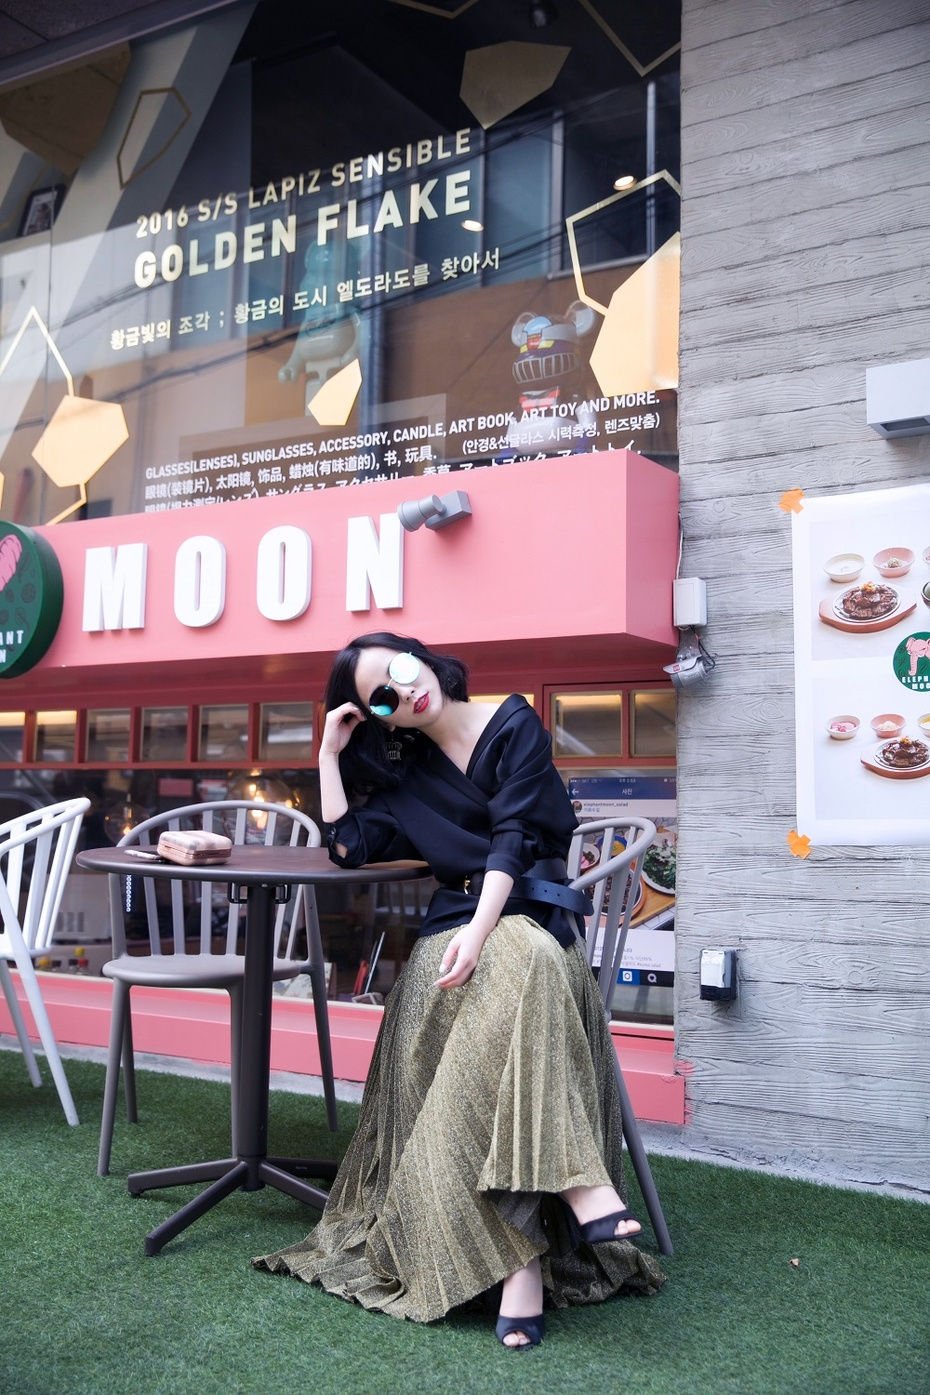 【妮儿の私服日记】一周一look,Nikki穿搭集锦 - Nikki妮儿 - Nikkis Fashion Blog